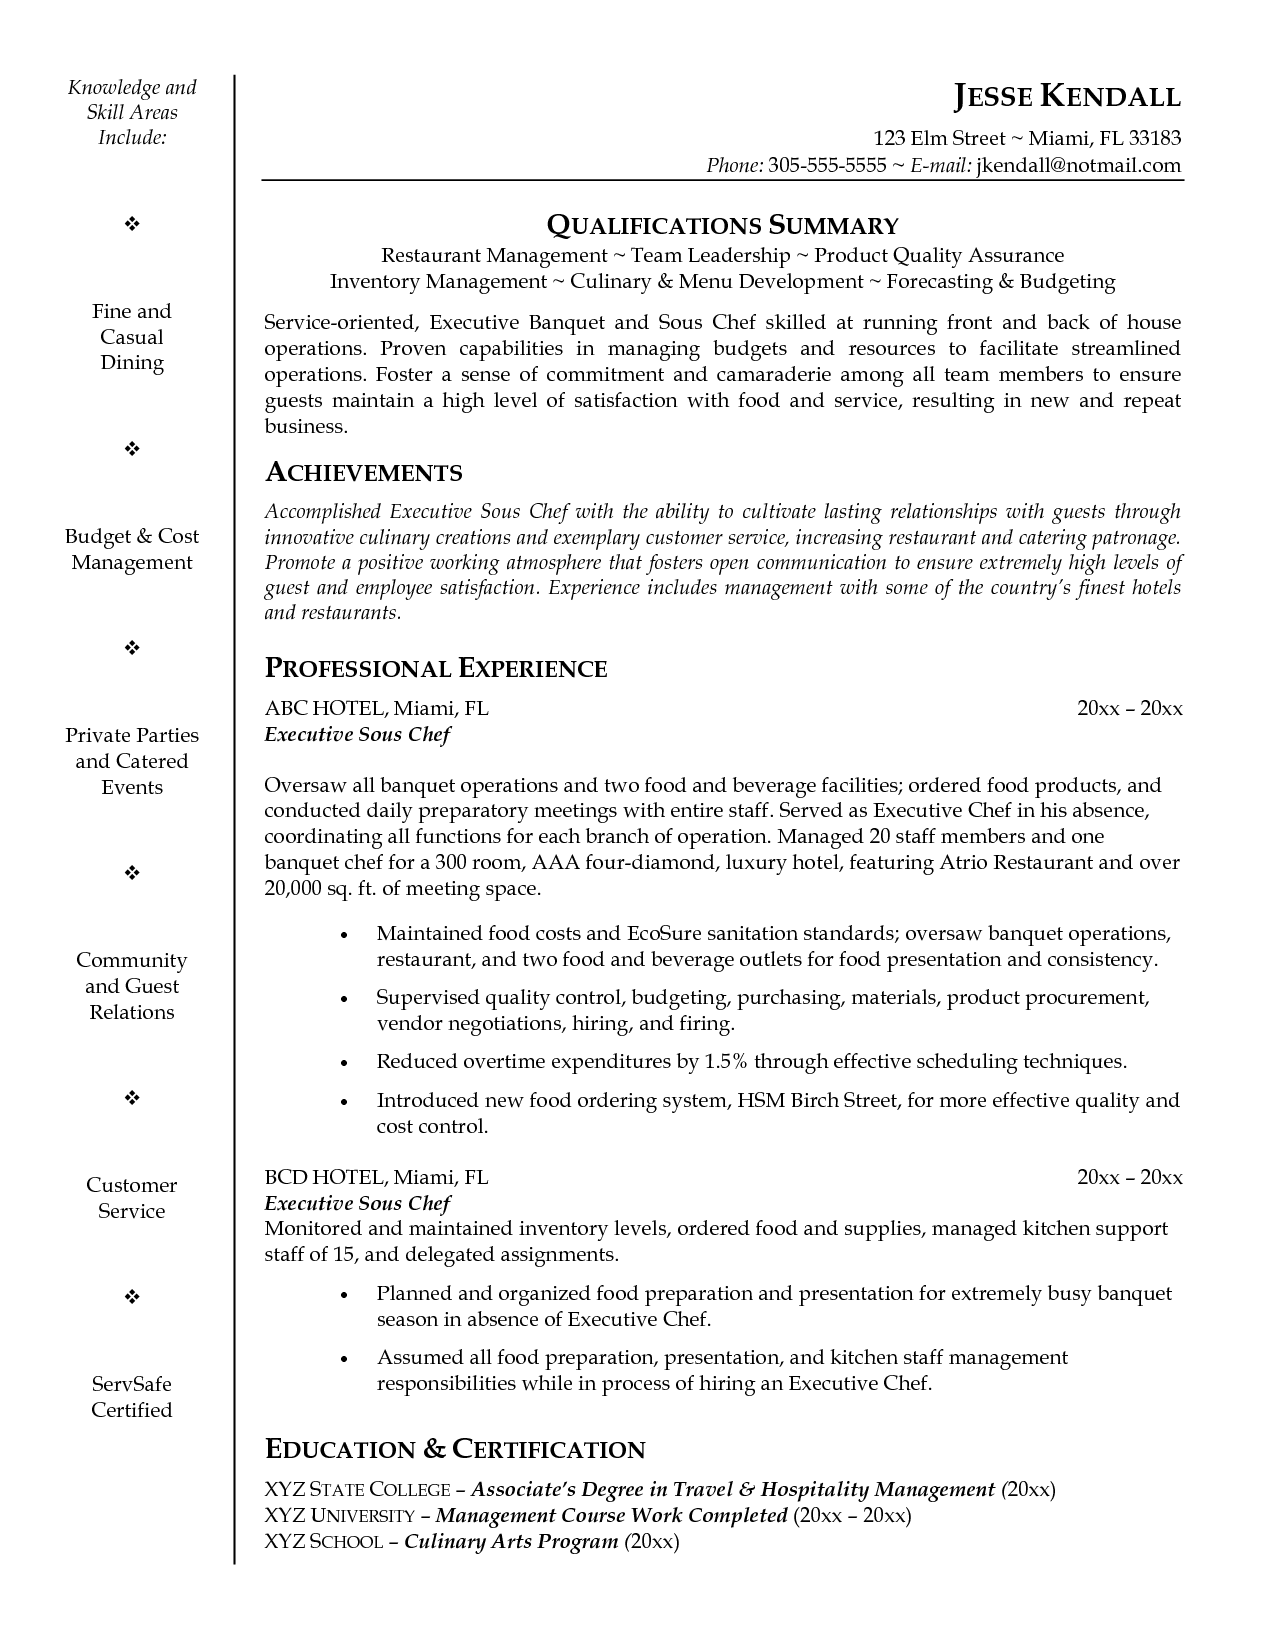 executive sous chef resume example sous chef job description resume by jesse kendall